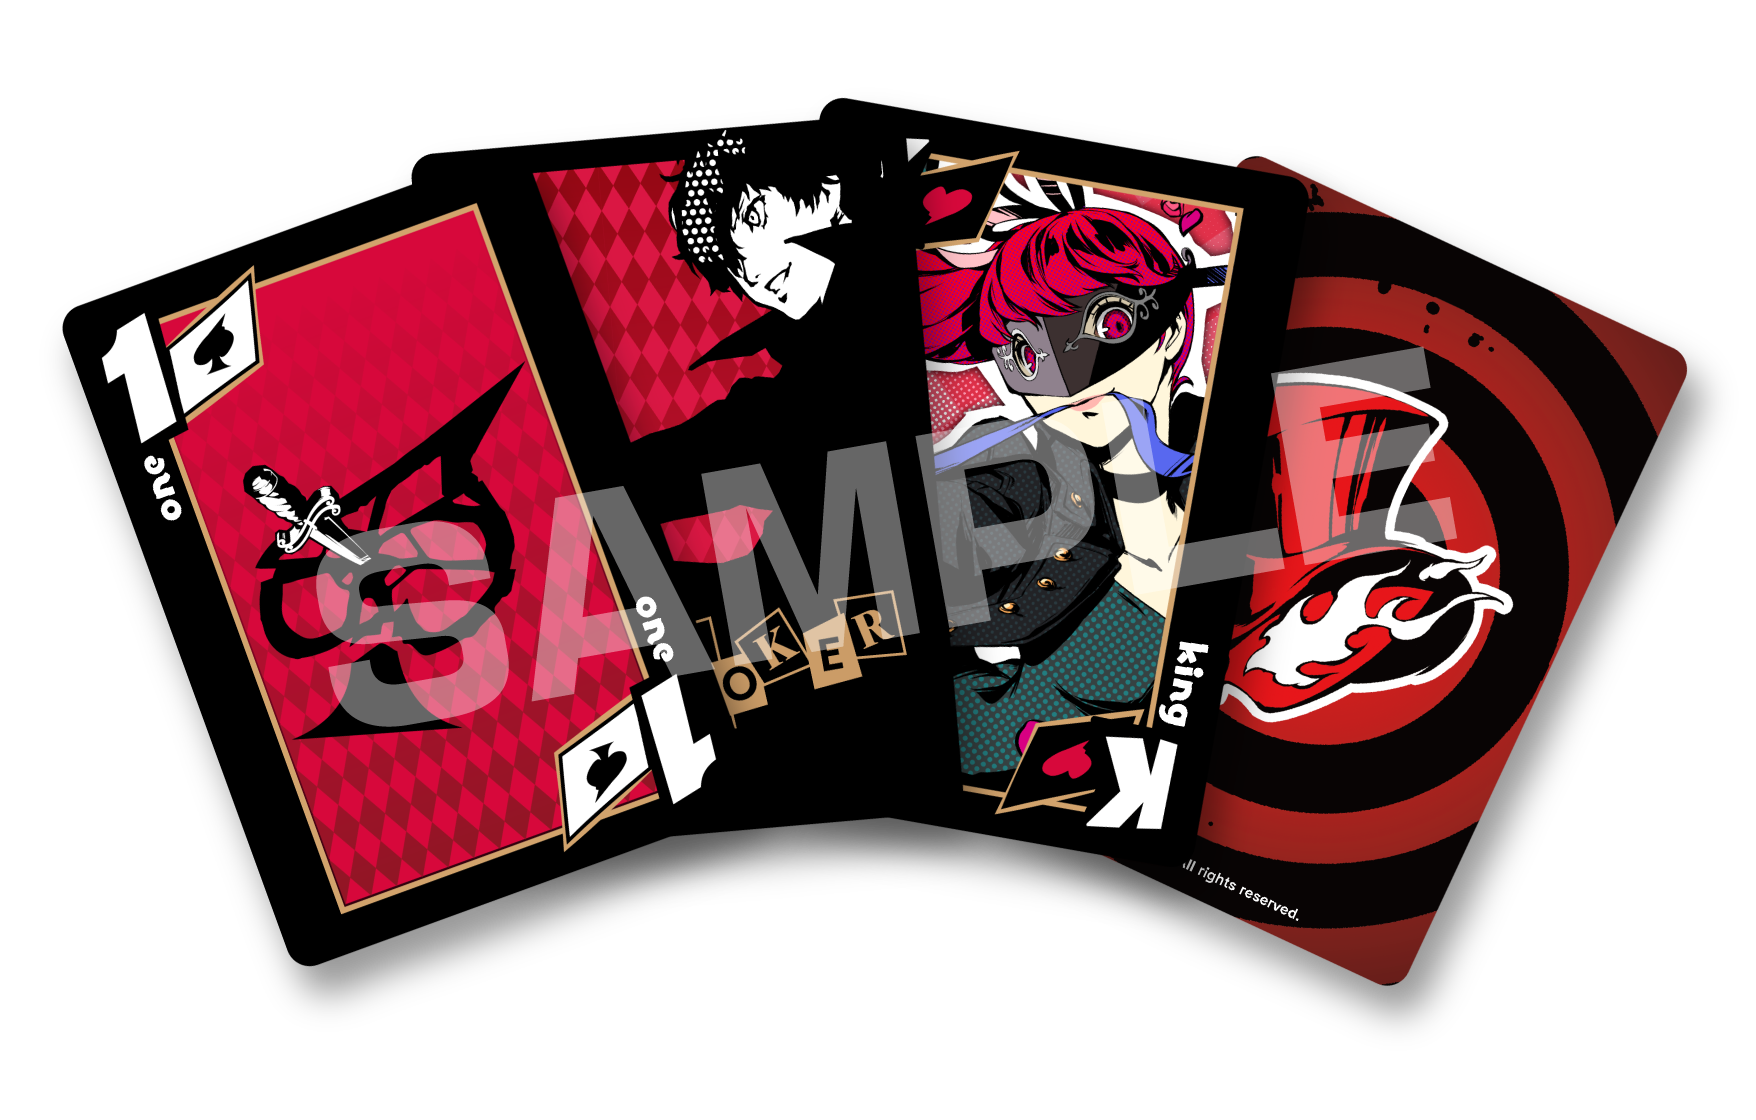 playing_card_p5r_02